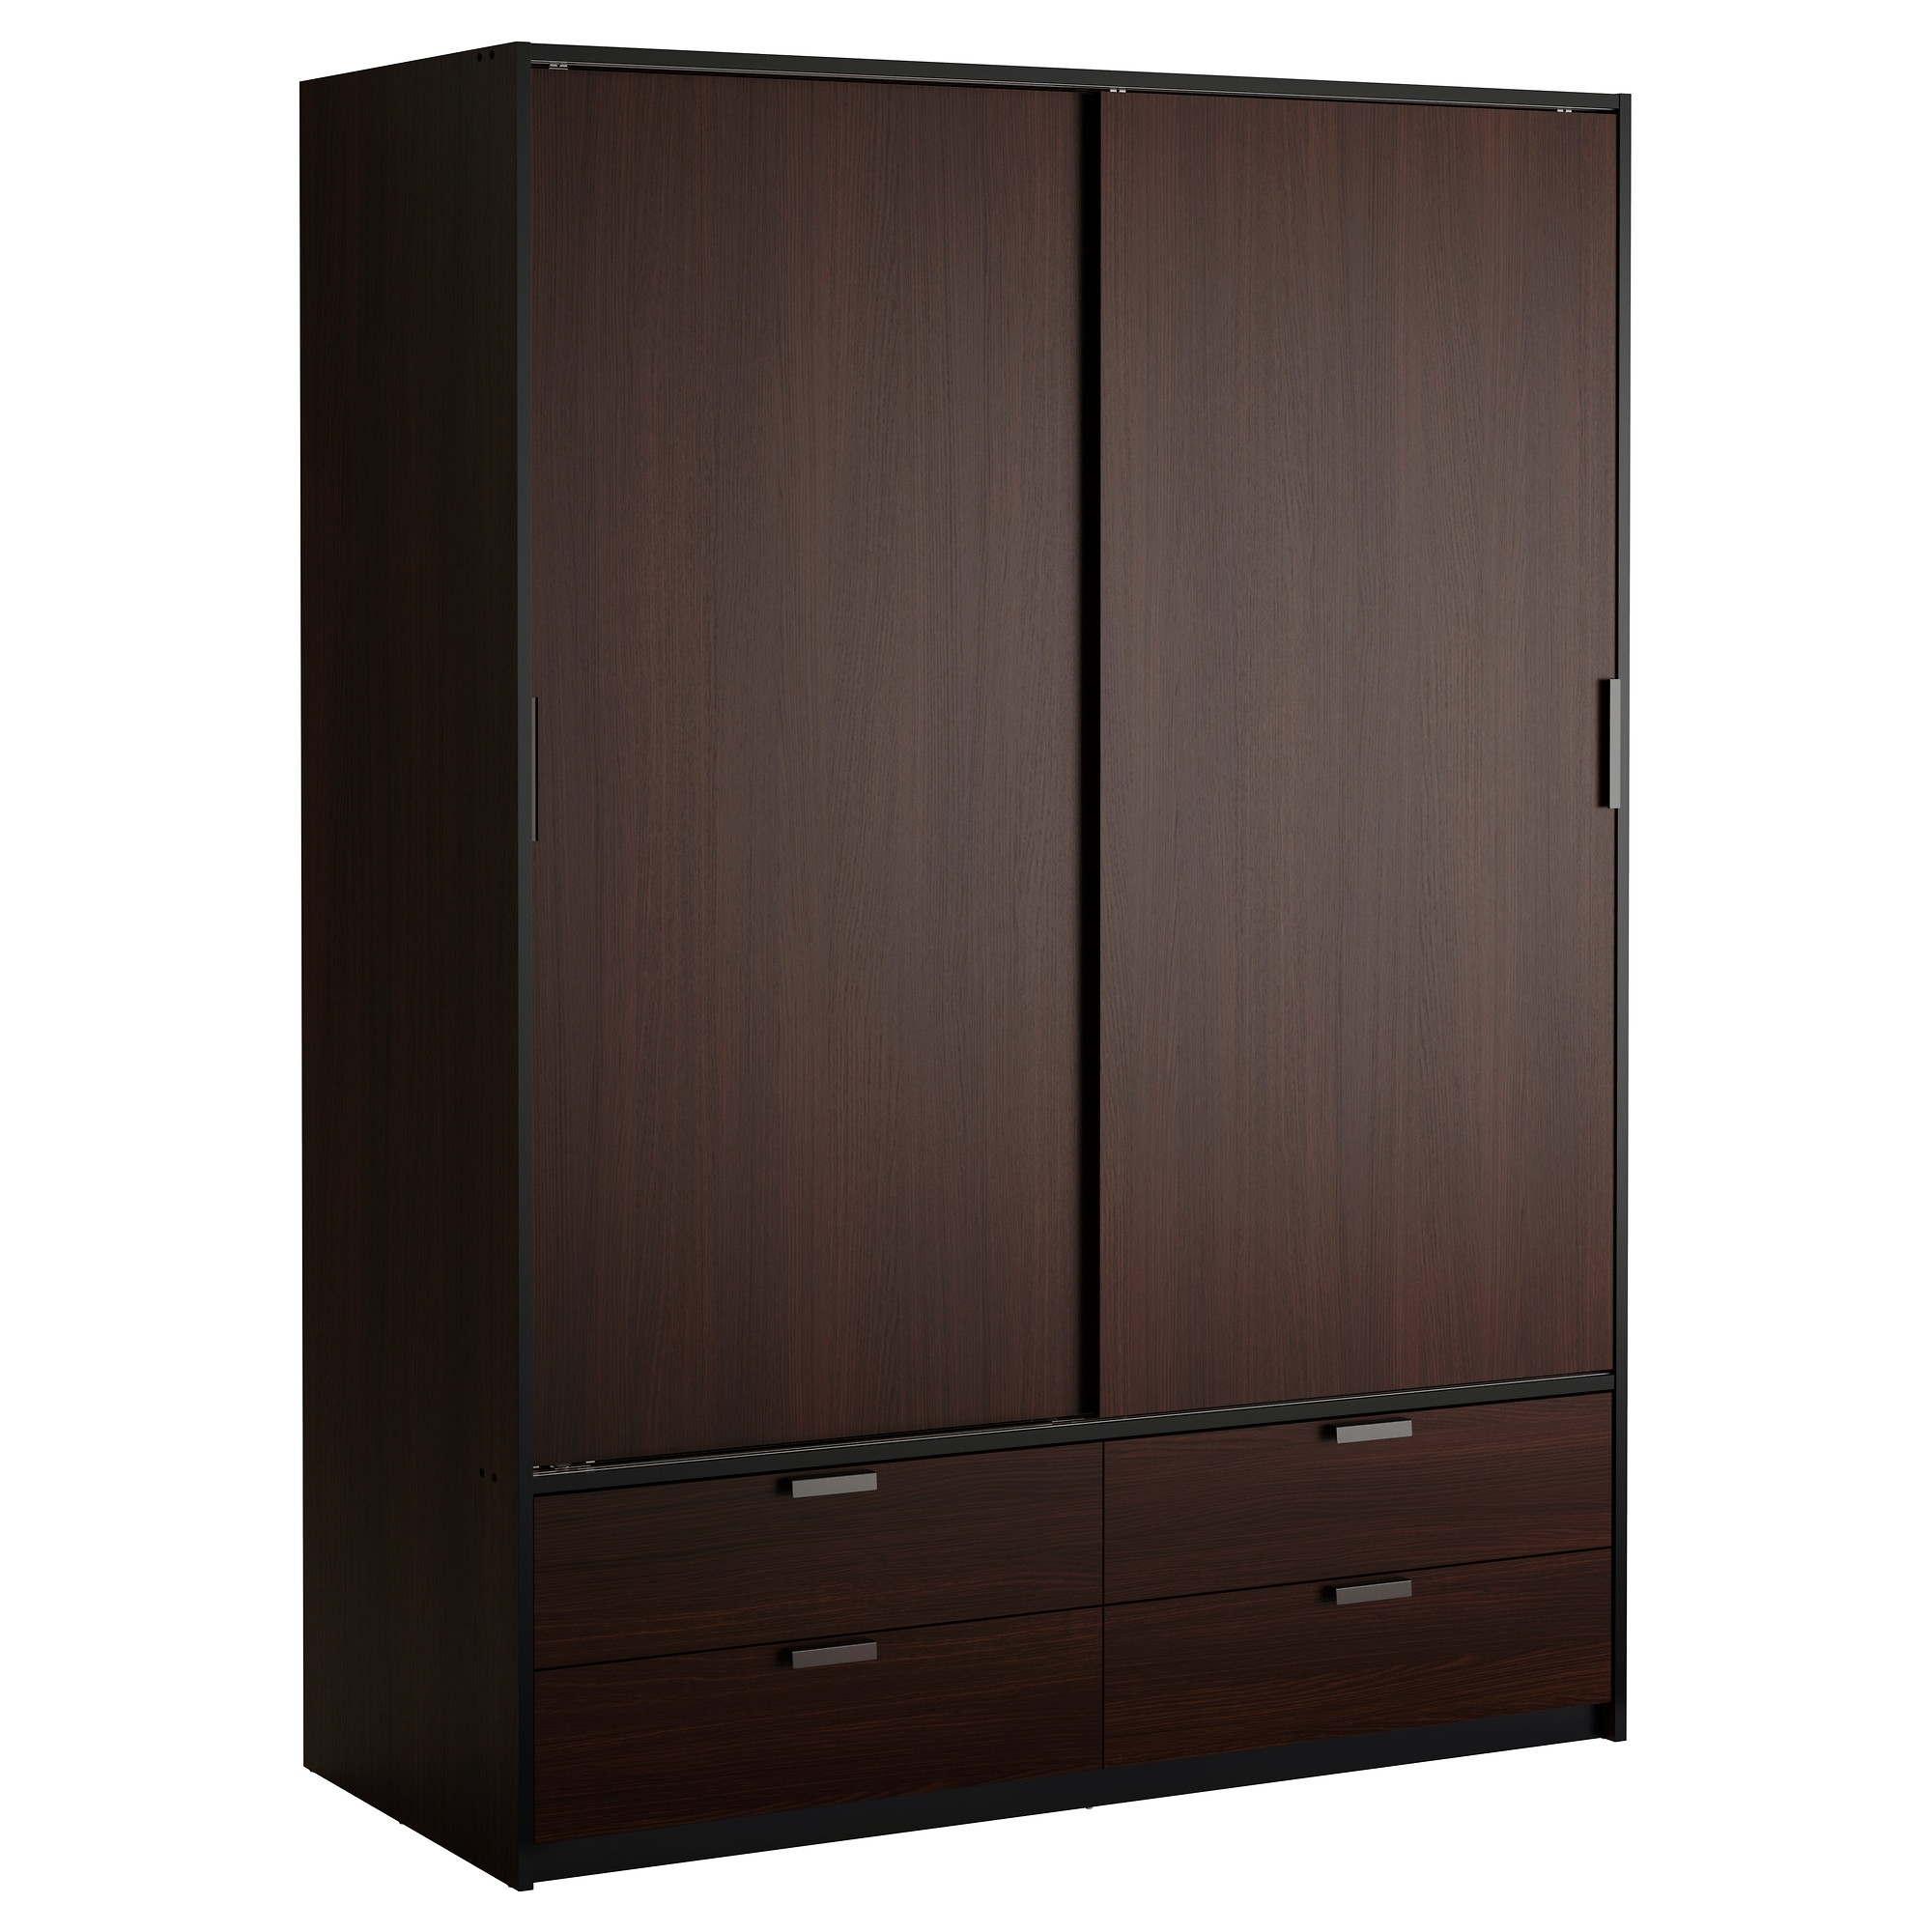 Possible Wardrobe Solution – Trysil Wardrobe W Sliding Doors/4 Inside Well Known Black Wardrobes With Drawers (View 15 of 15)